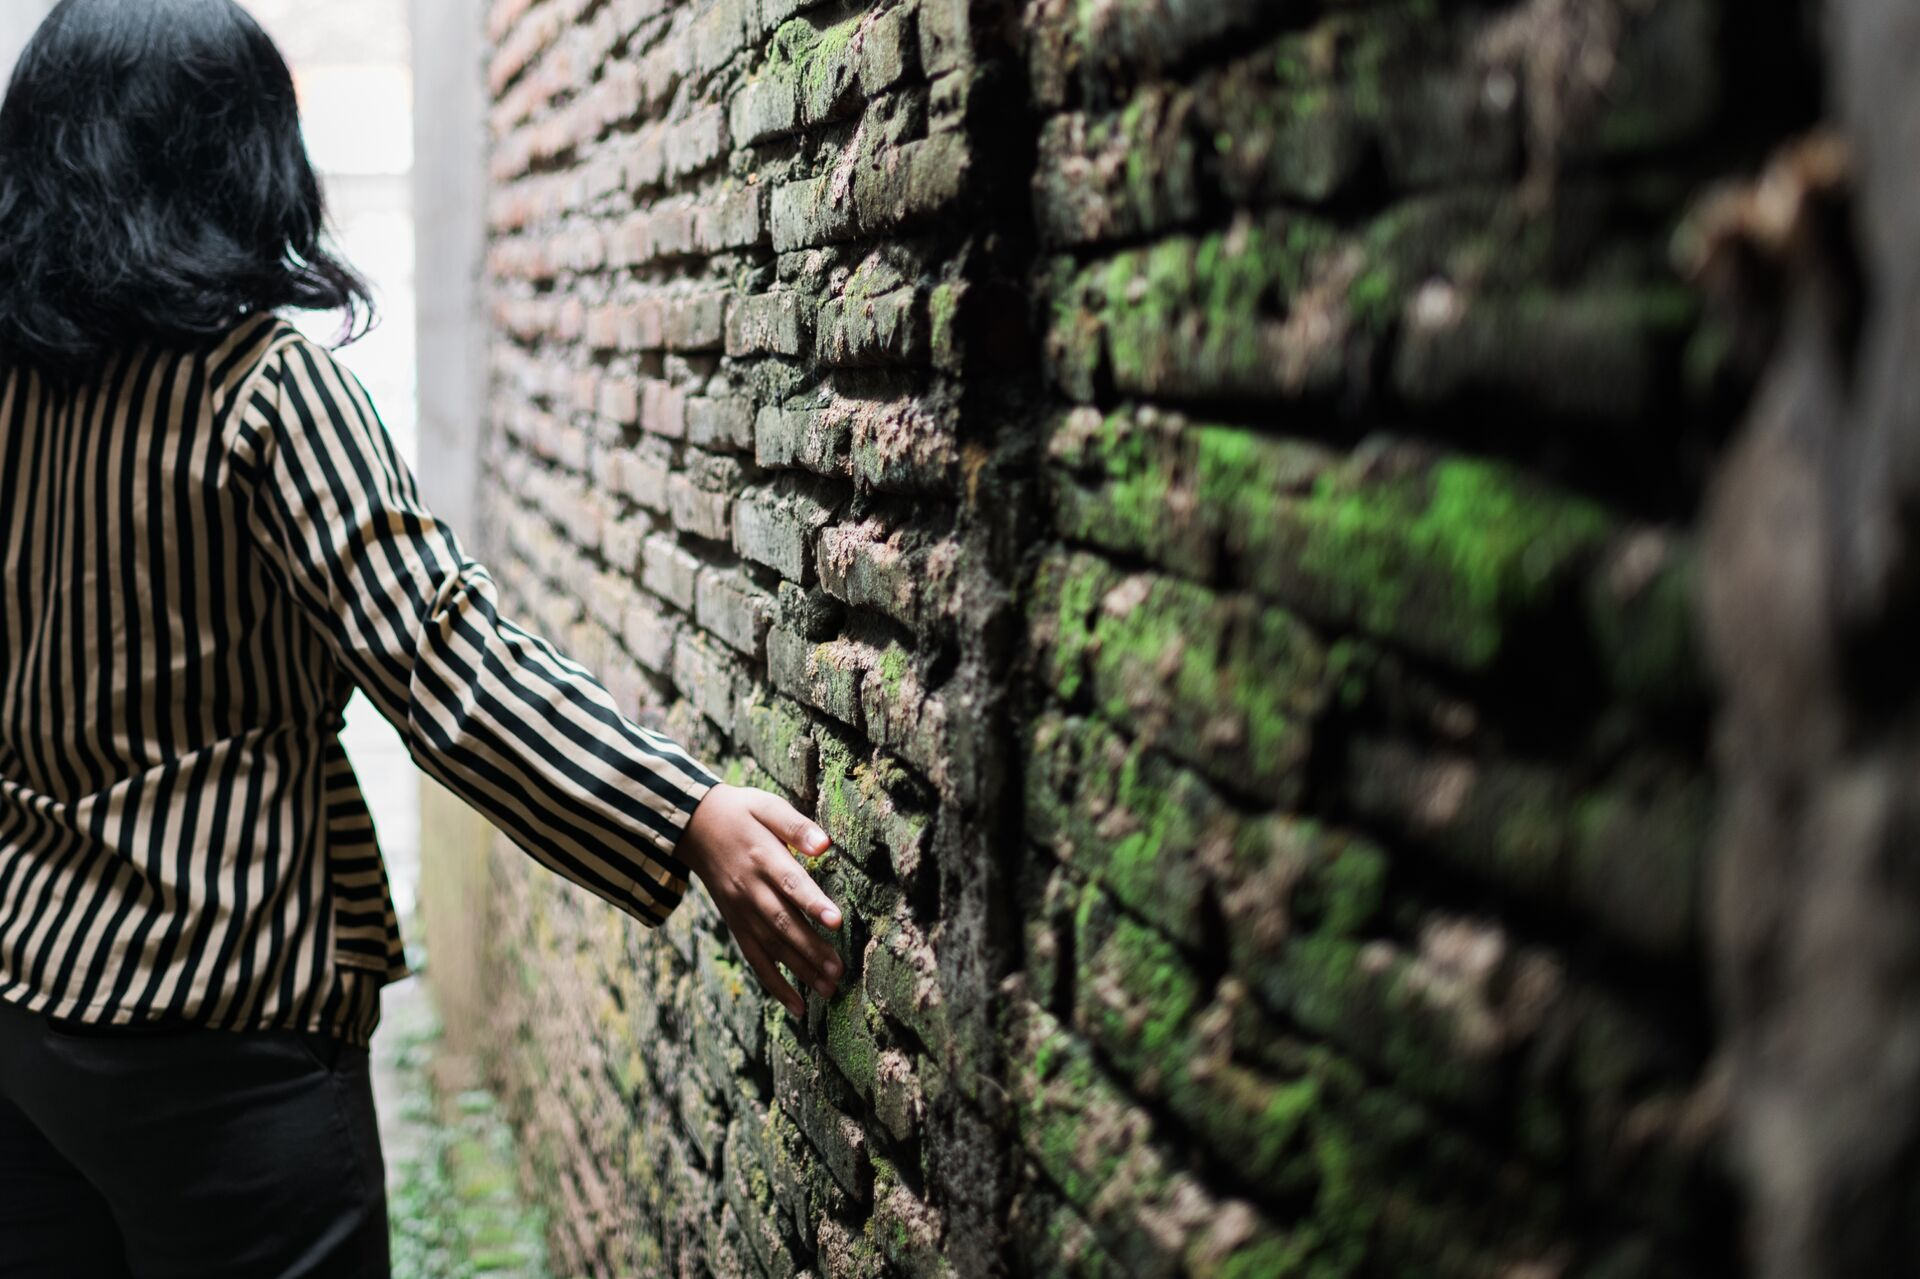 Girl walks down an alleyway with her hand running against the moss covered wall